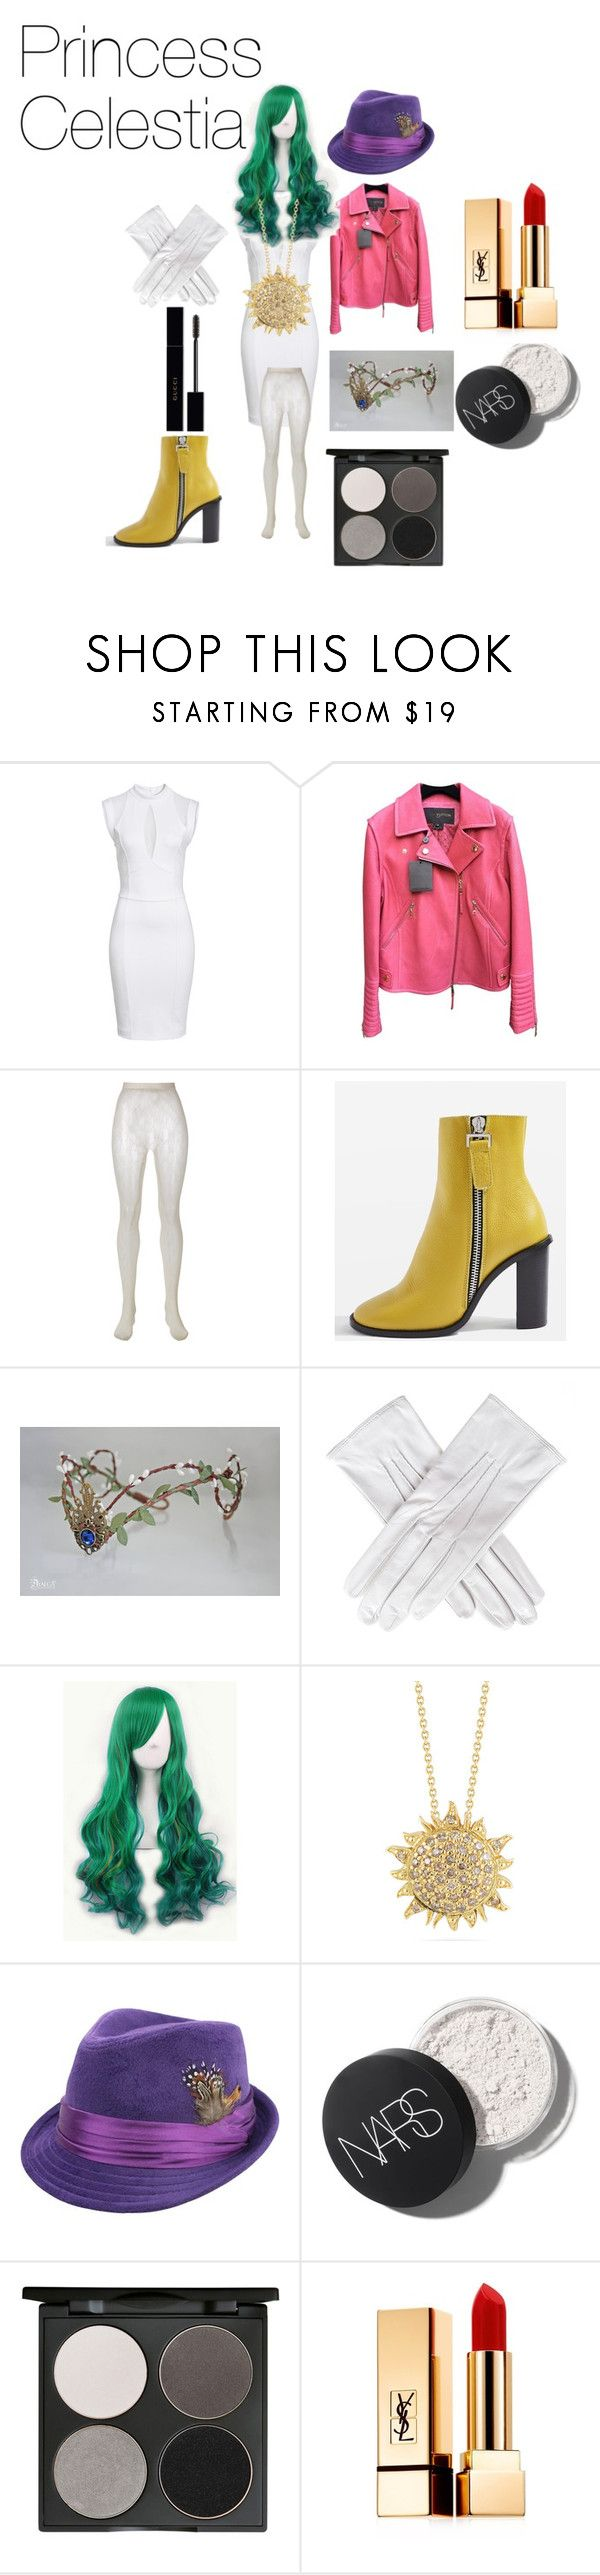 """""""Princess Celestia My Little Pony Friendship is Magic"""" by tori-camilleri on Polyvore featuring Sentimental New York, Louis Vuitton, Gucci, Topshop, Black, WithChic, Roberto Coin, Gorgeous Cosmetics and Yves Saint Laurent"""